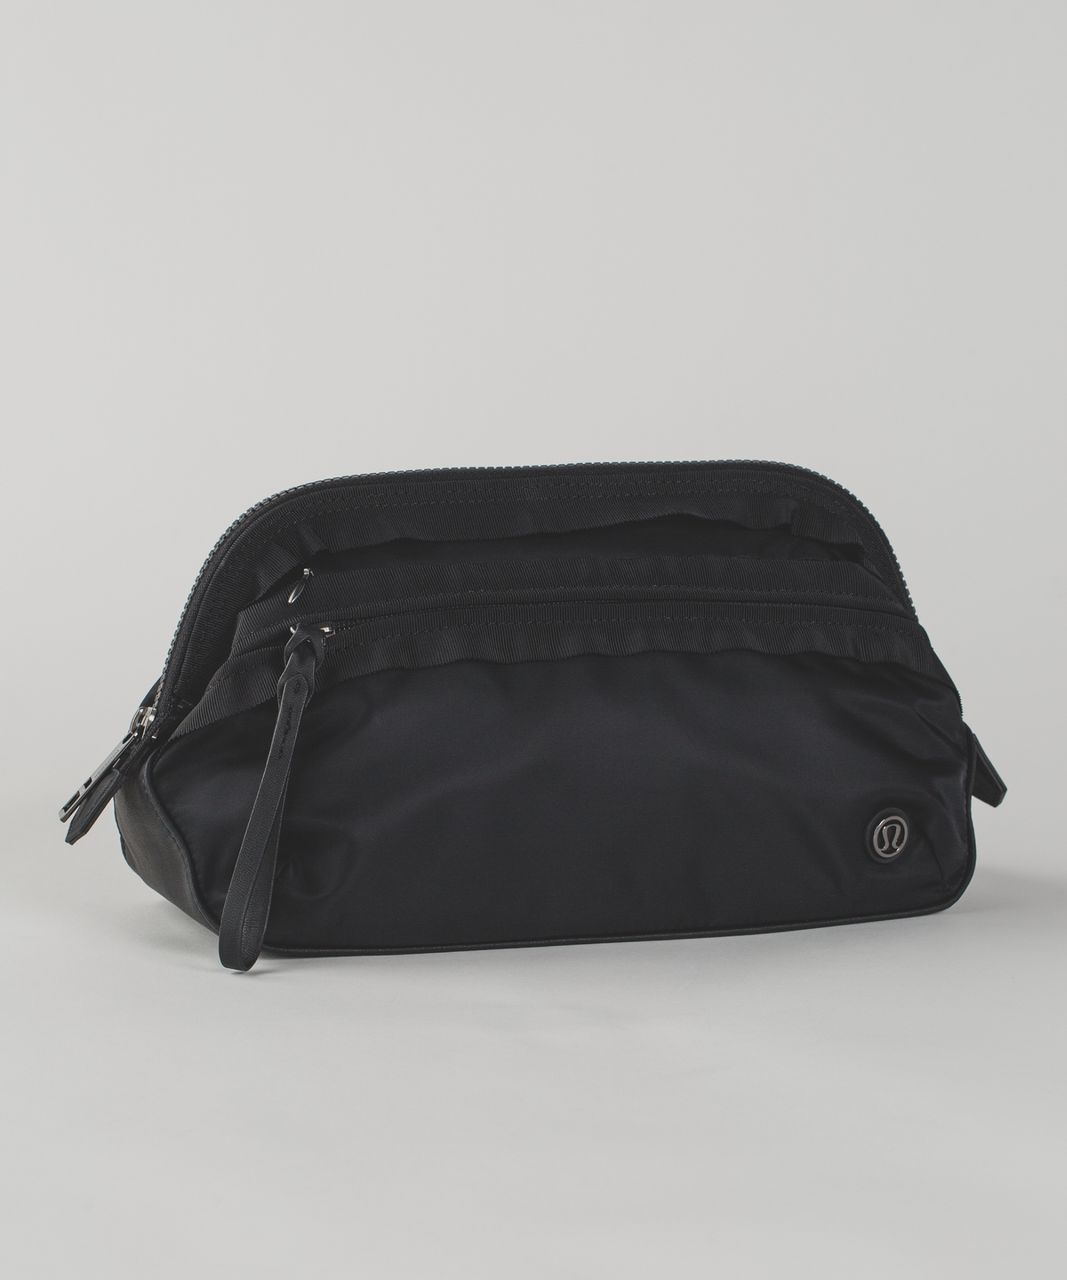 Lululemon Dont Sweat It Kit Black